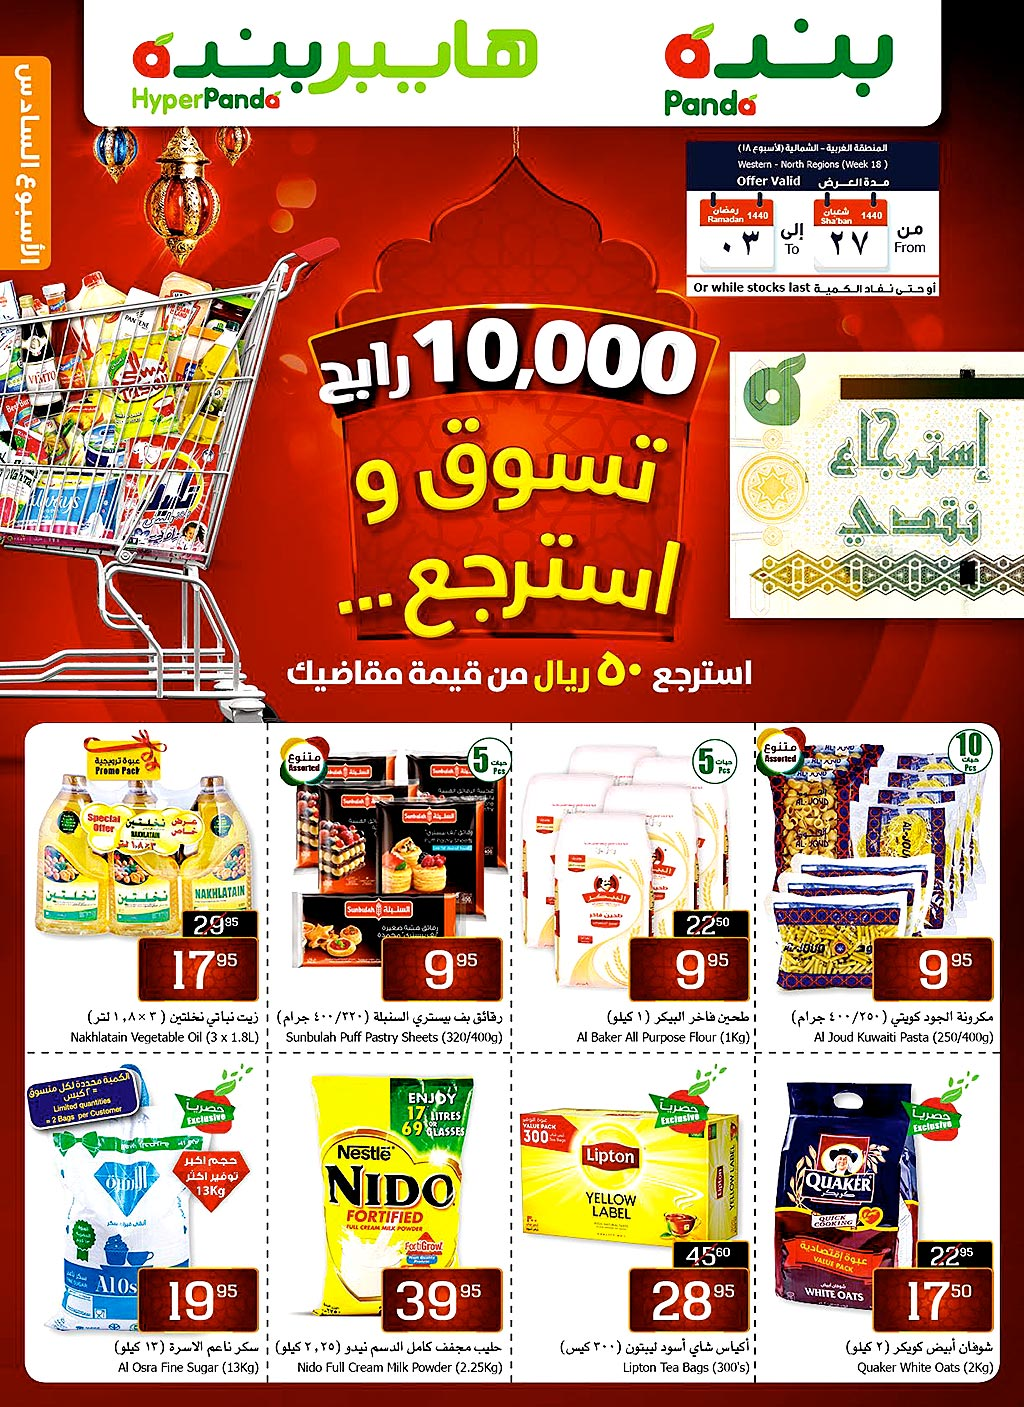 e4fb73137 hyperpanda offers from 2may to 8may 2019 page number 1 عروض هايبر بنده من 2  مايو